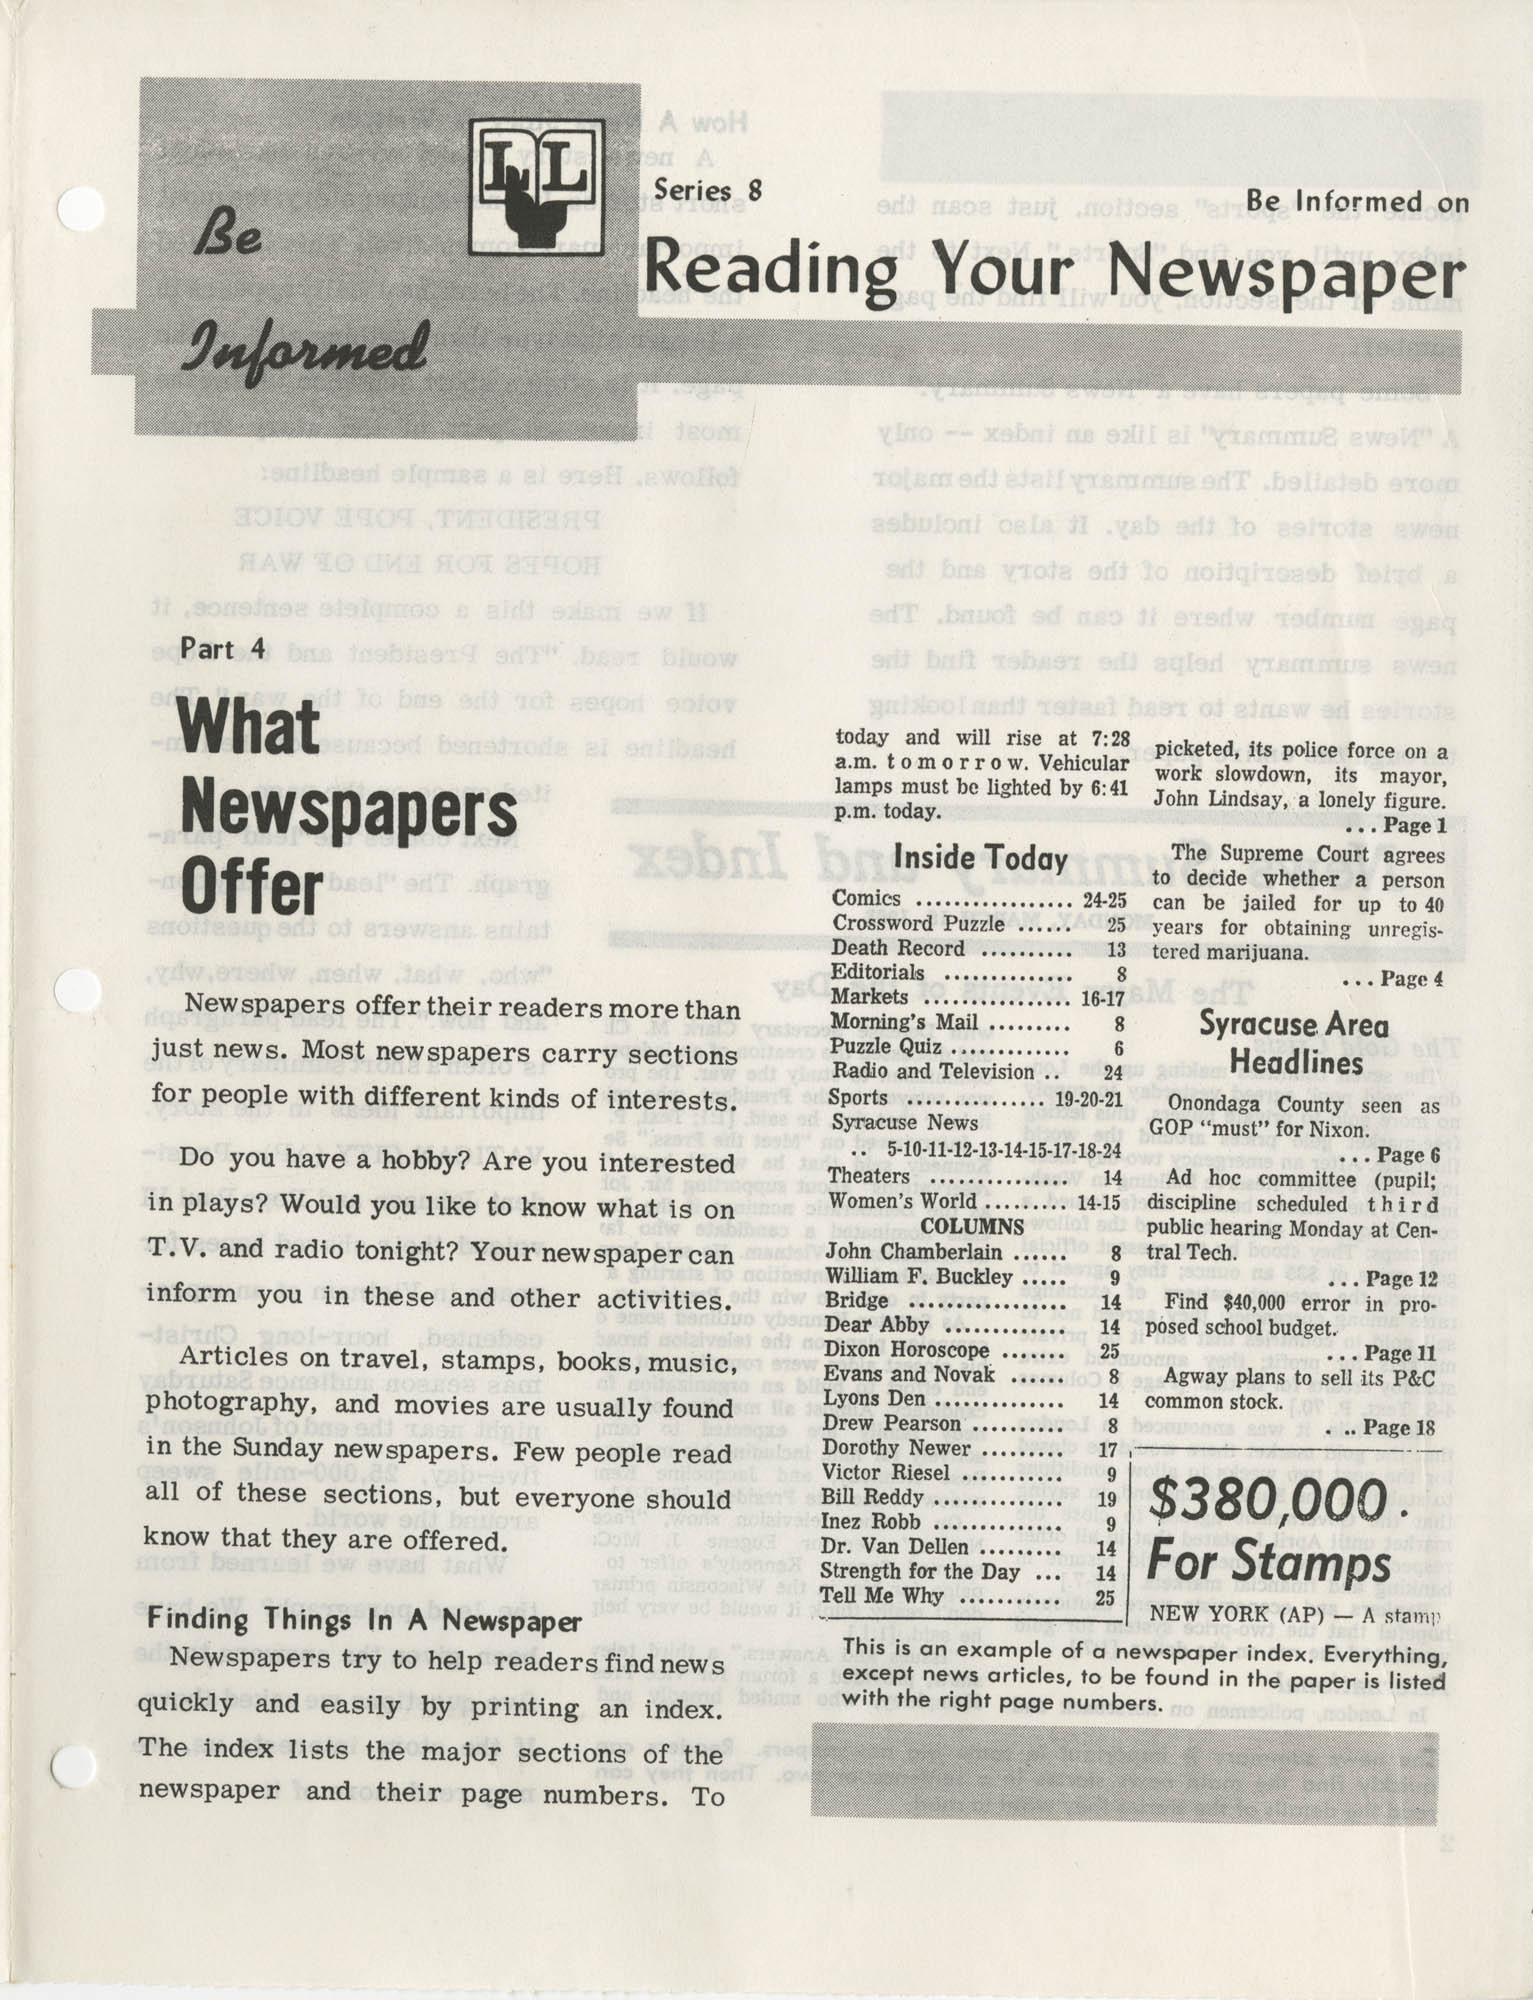 Be Informed, Reading Your Newspaper, Part 4